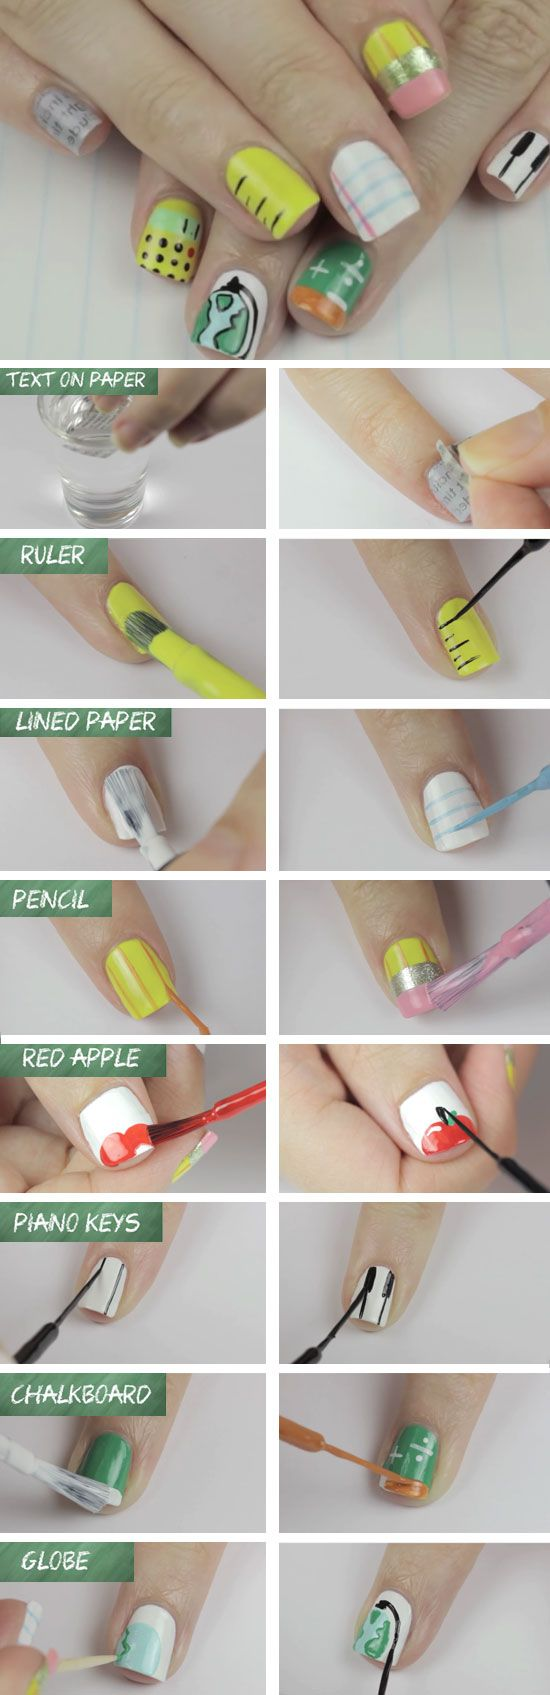 Classroom Objects | DIY Back to School Nails for Kids | Awesome Nail Art Ideas for Fall